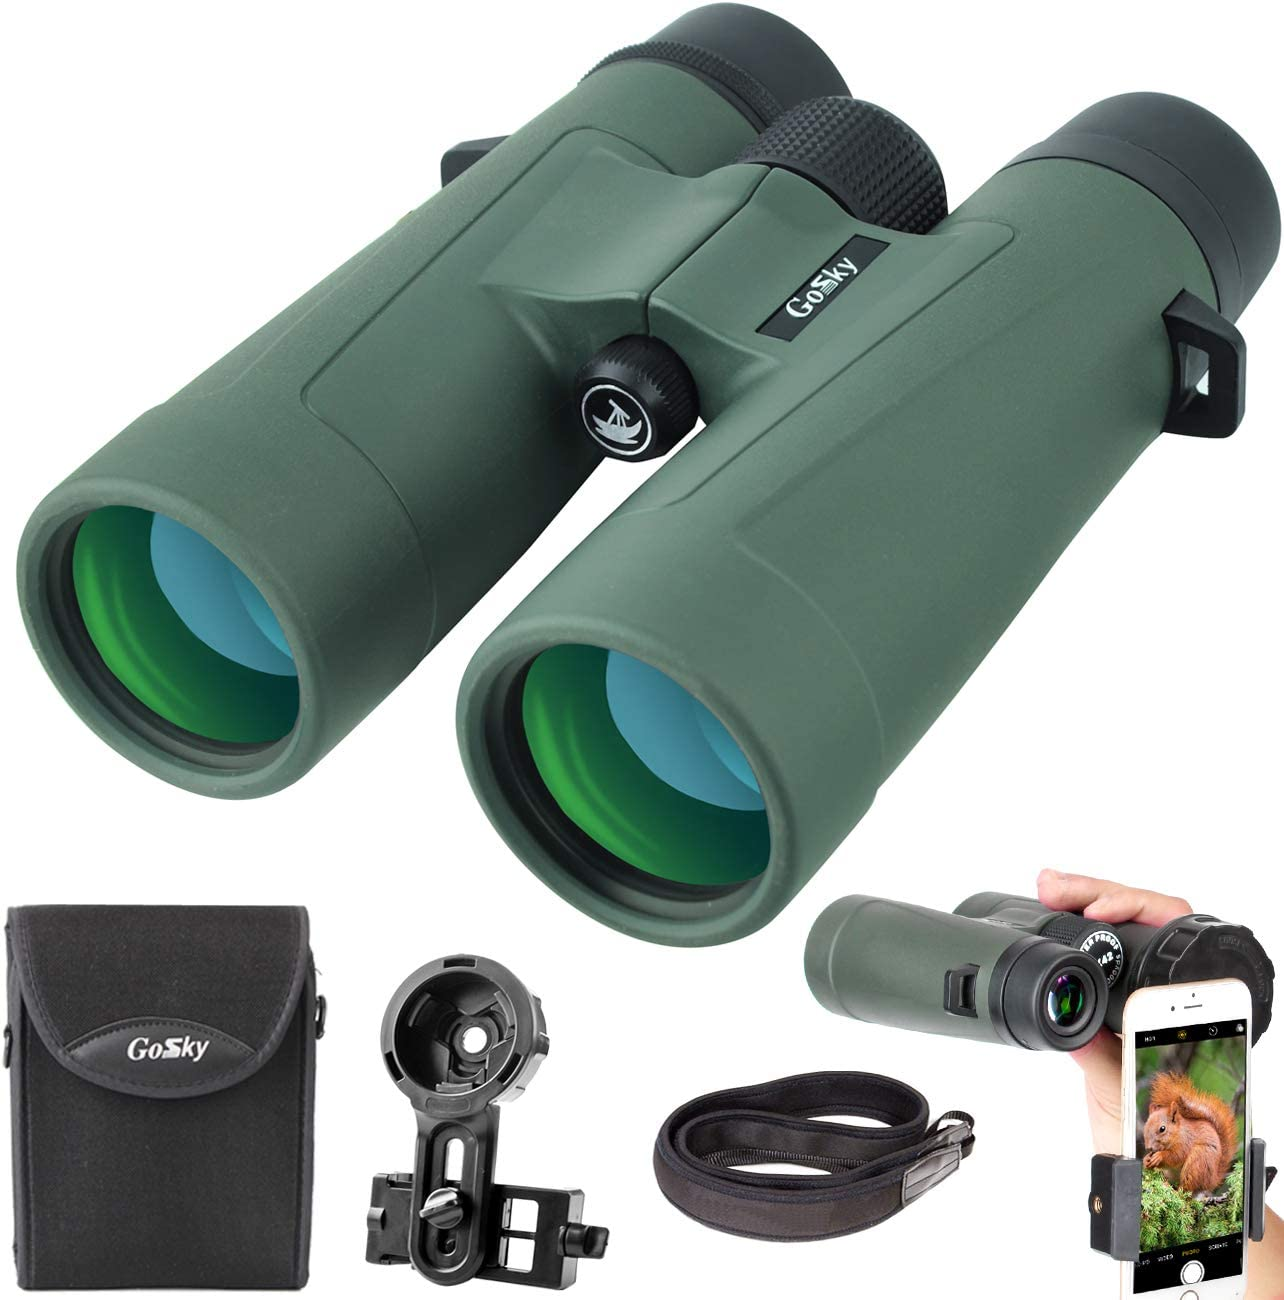 Gosky 10×42 Binoculars for Adults, Ultra HD Professional Binoculars for Bird Watching Travel Stargazing Hunting Concerts Sports-BAK4 Prism FMC Lens-with Phone Mount Strap Carrying Bag